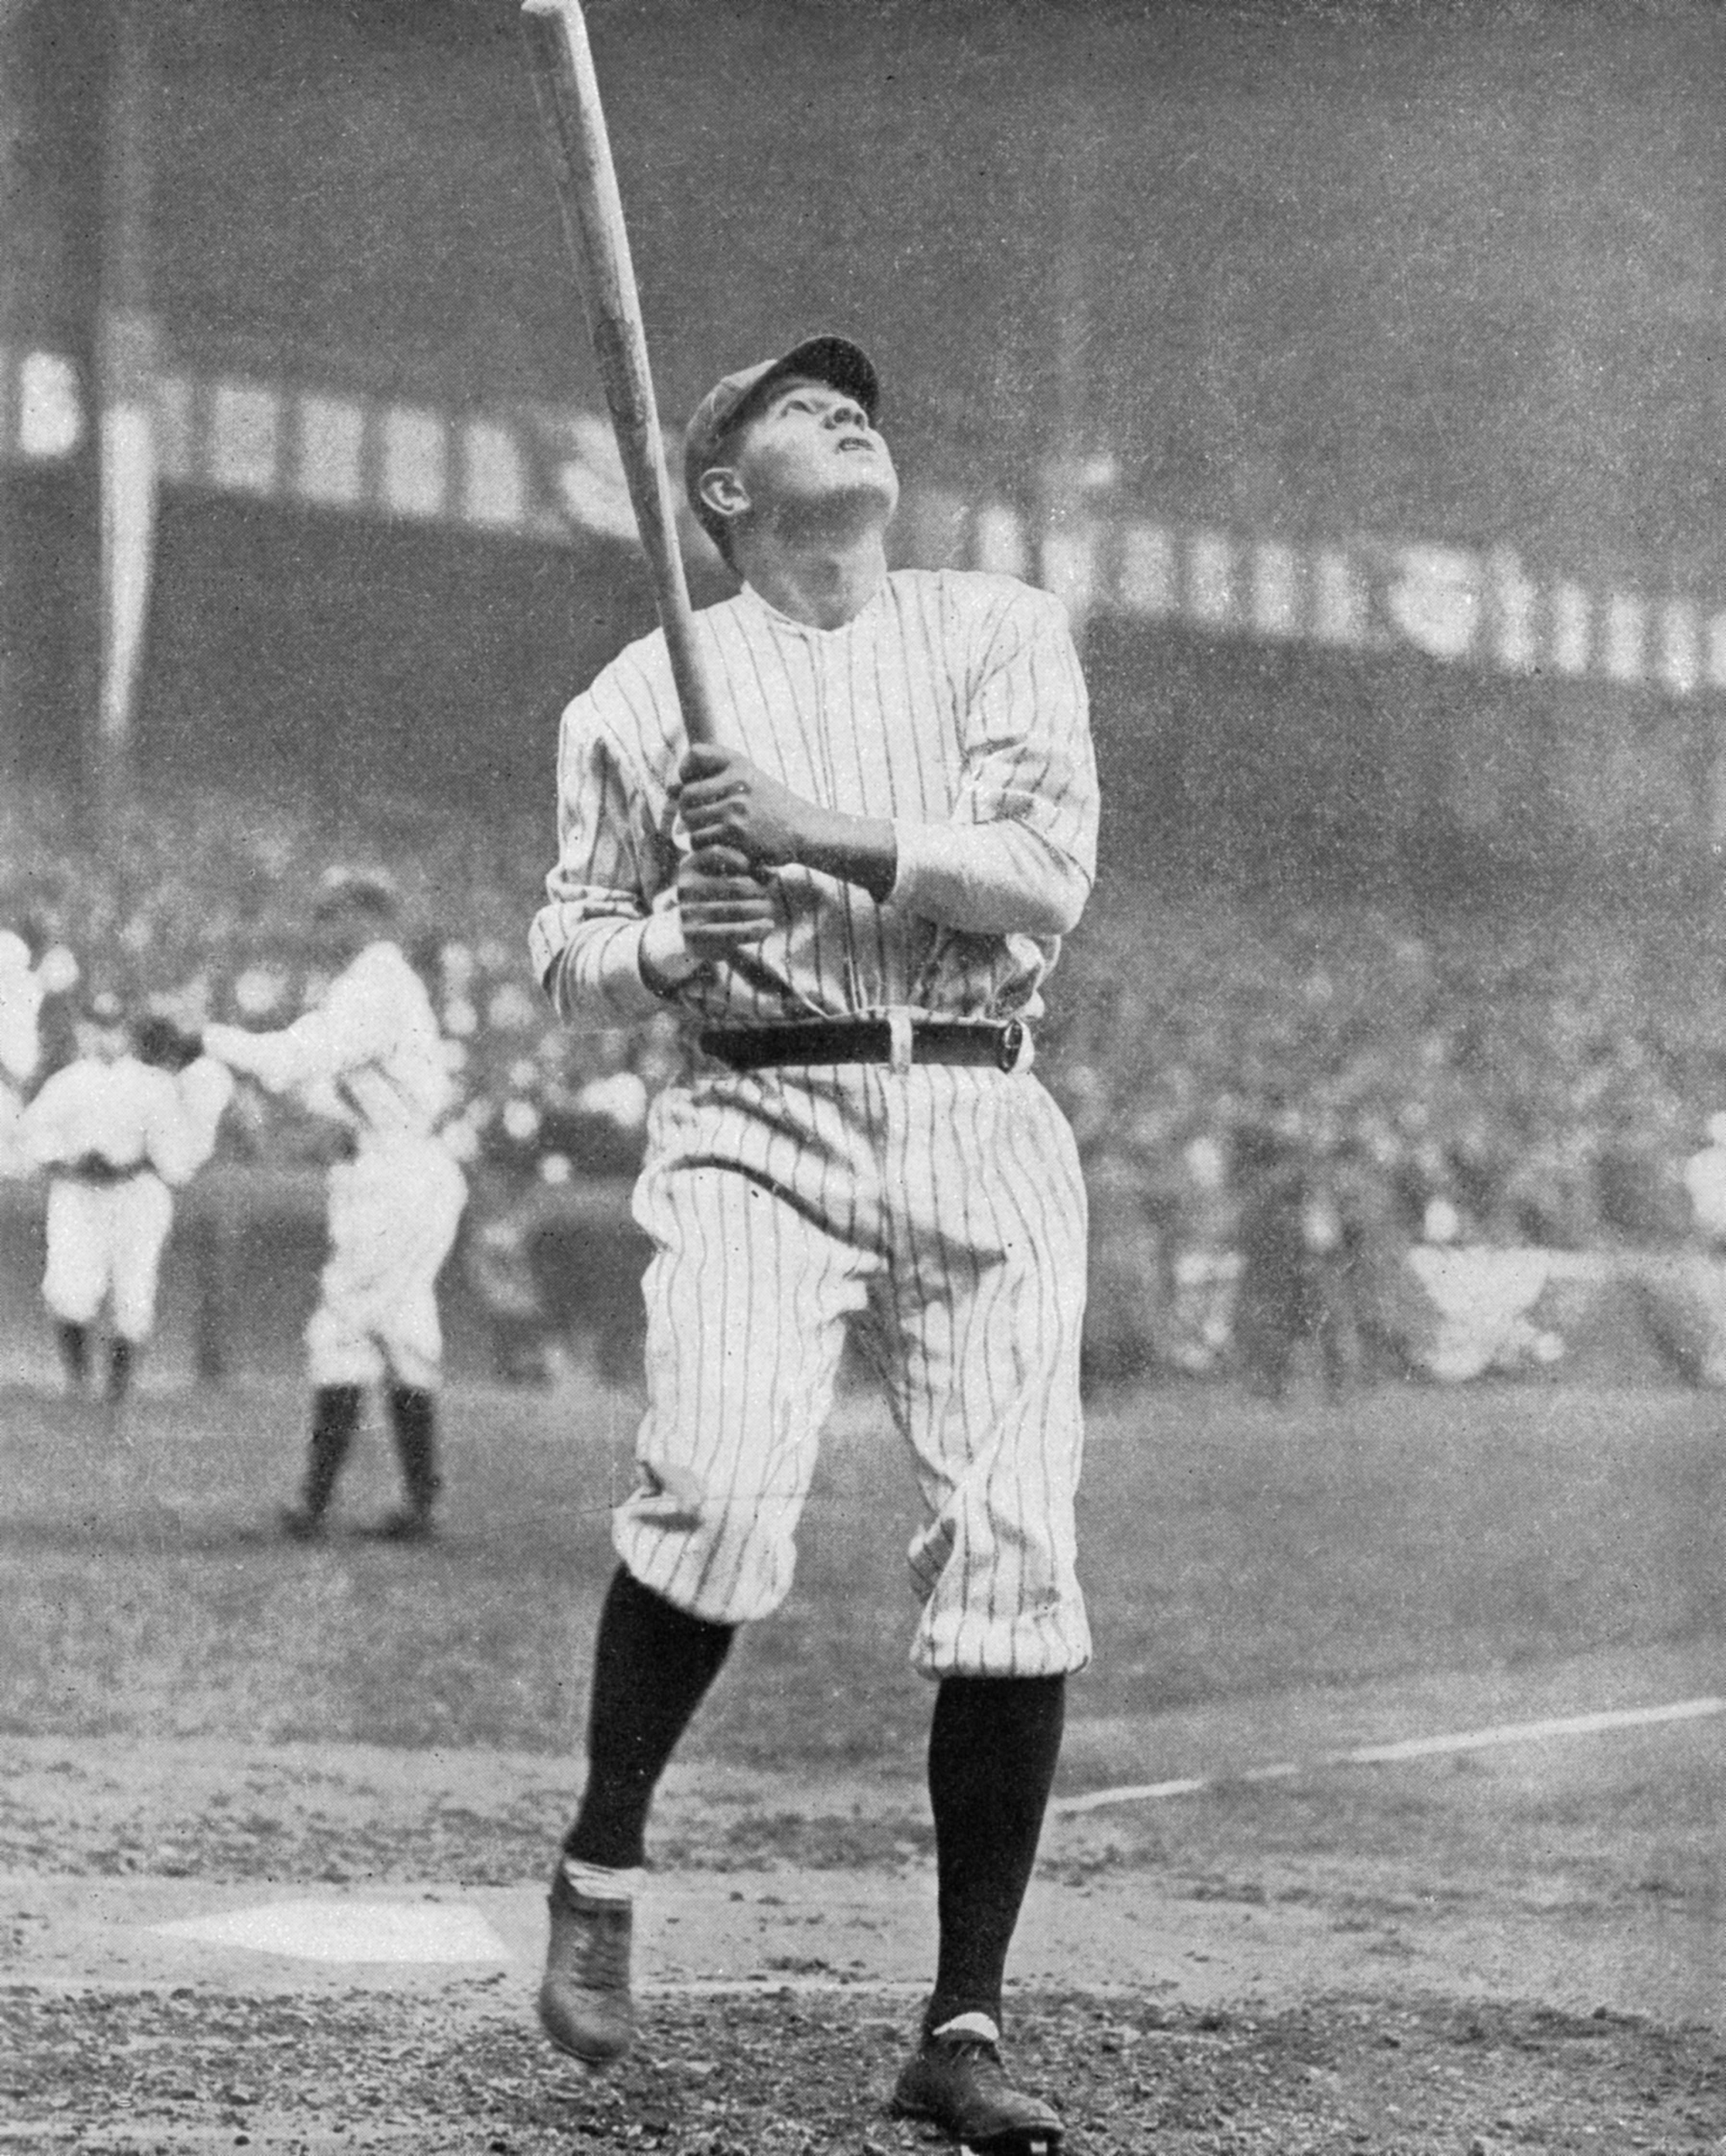 Babe Ruth swinging at the Polo Grounds in 1921 (SABR-RUCKER ARCHIVE)